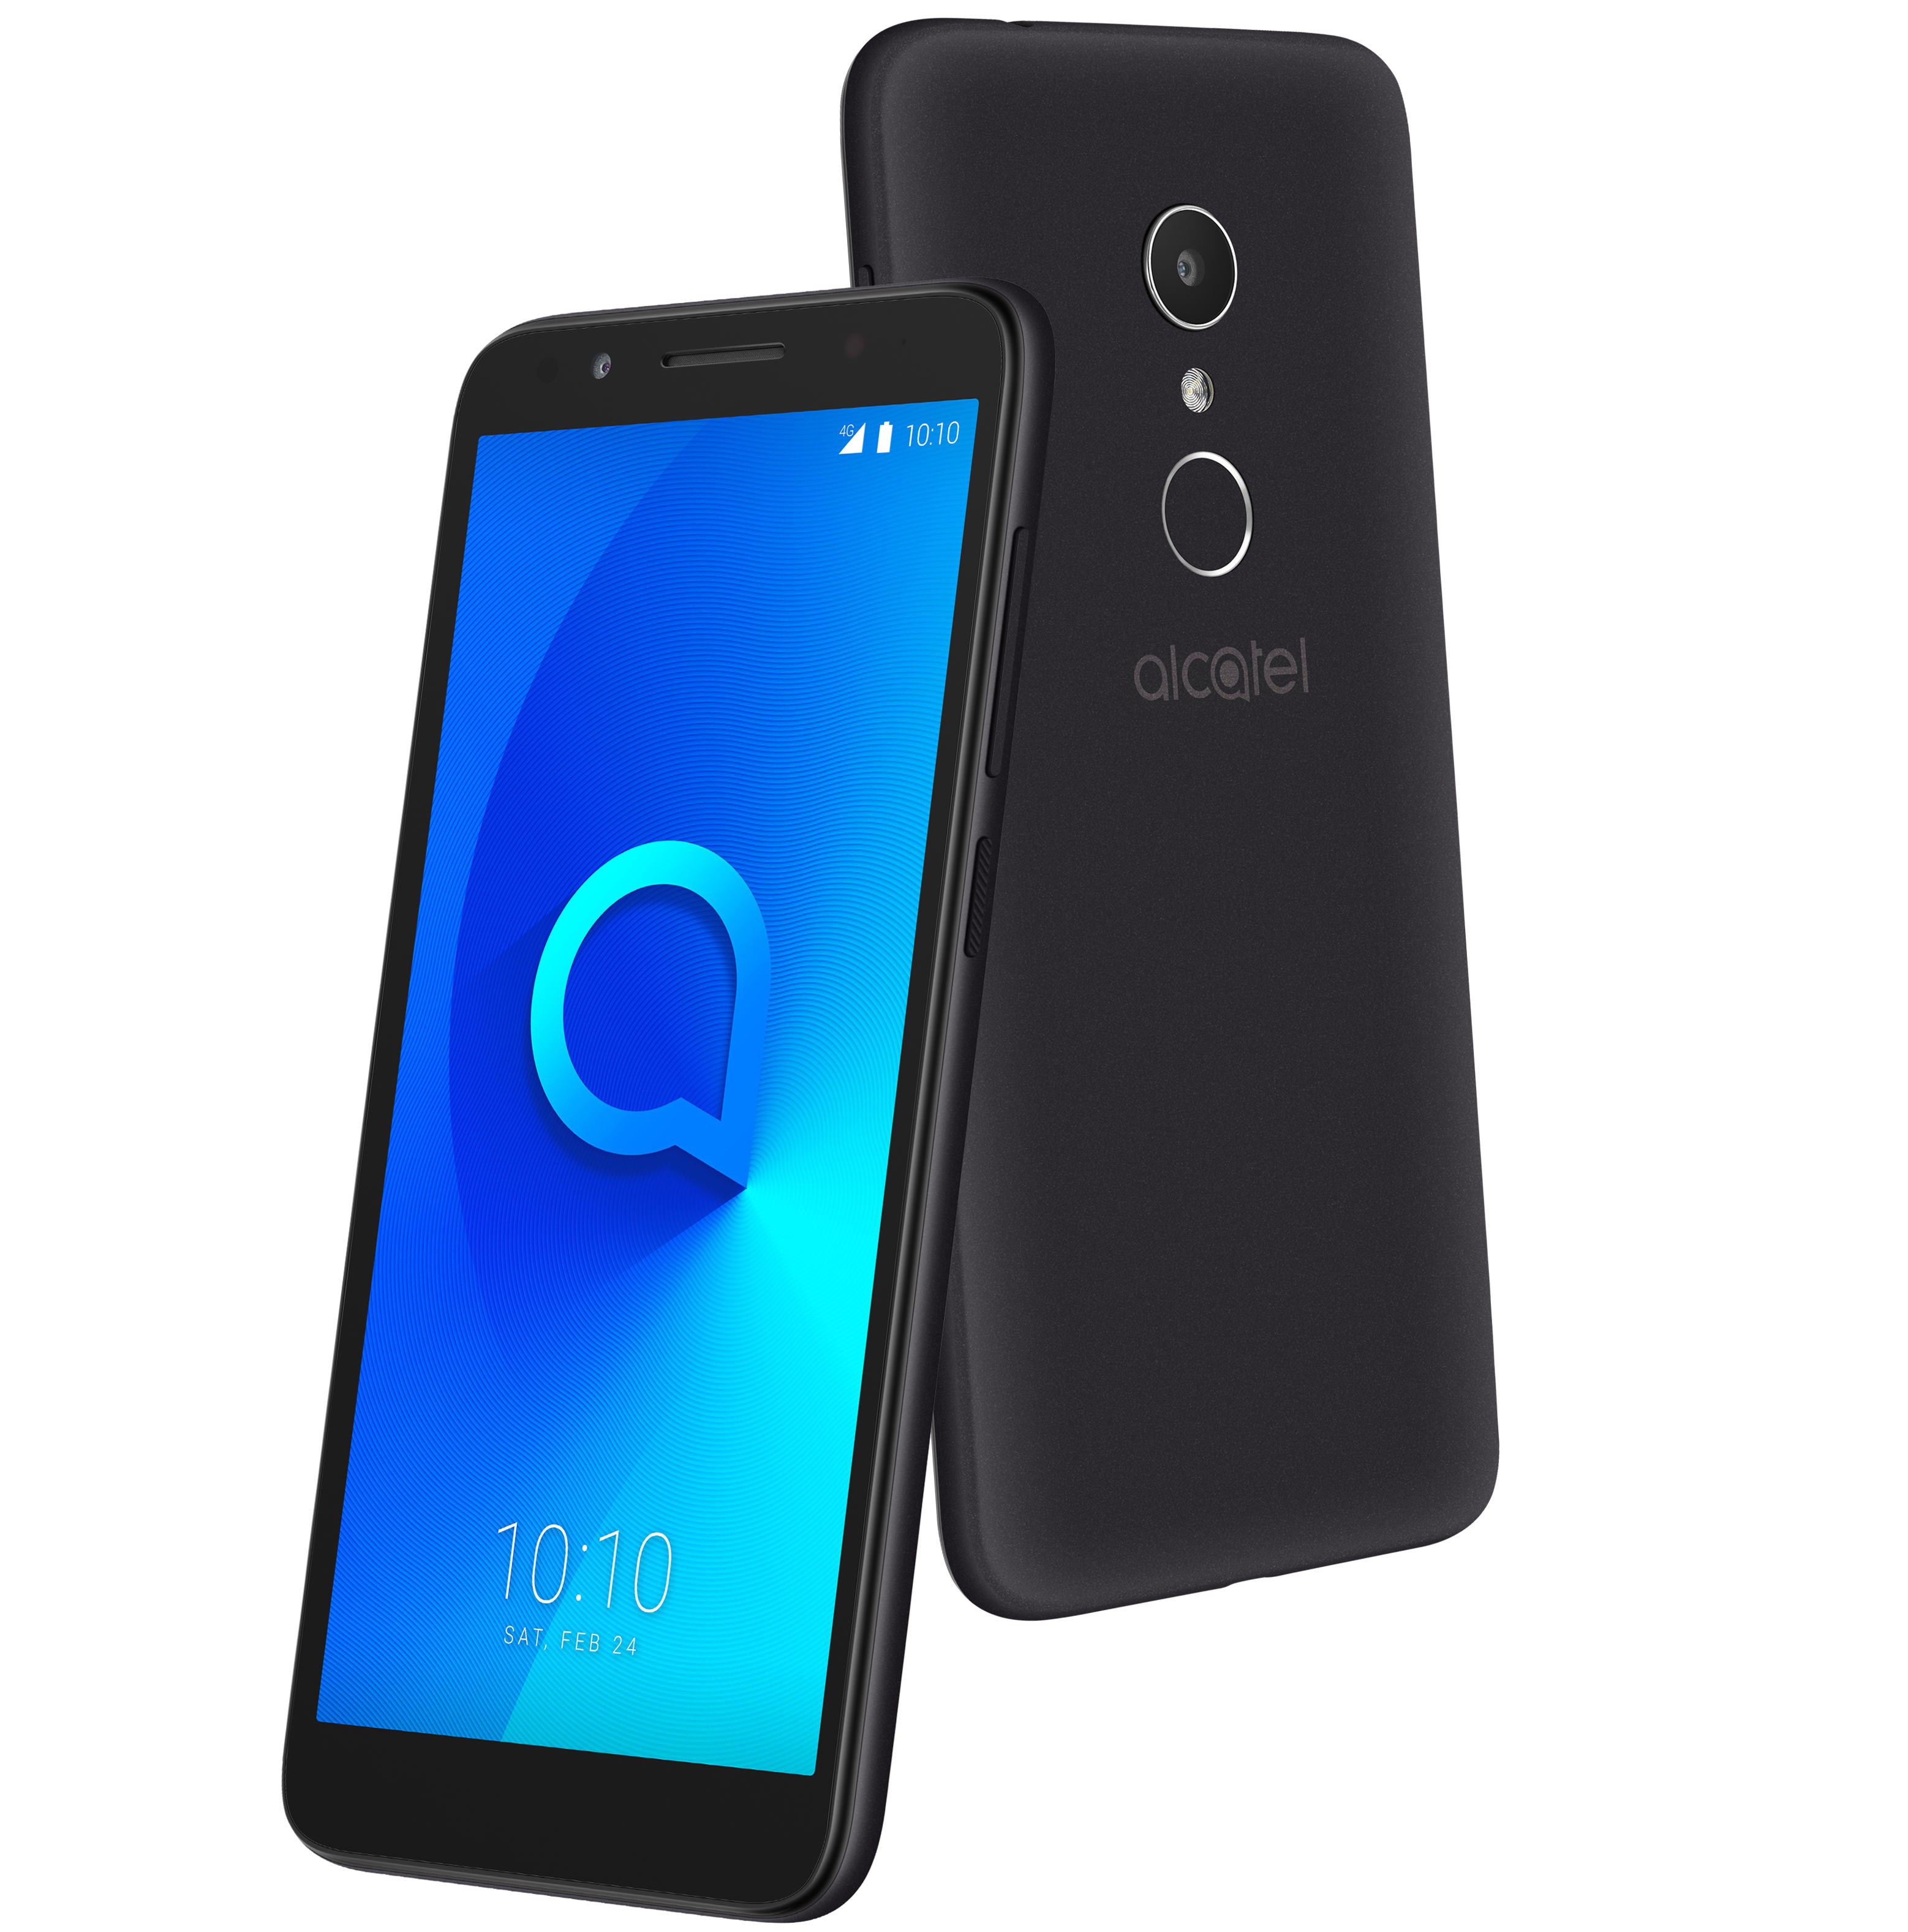 Update: Available but out of stock] $100 Android Go-powered Alcatel